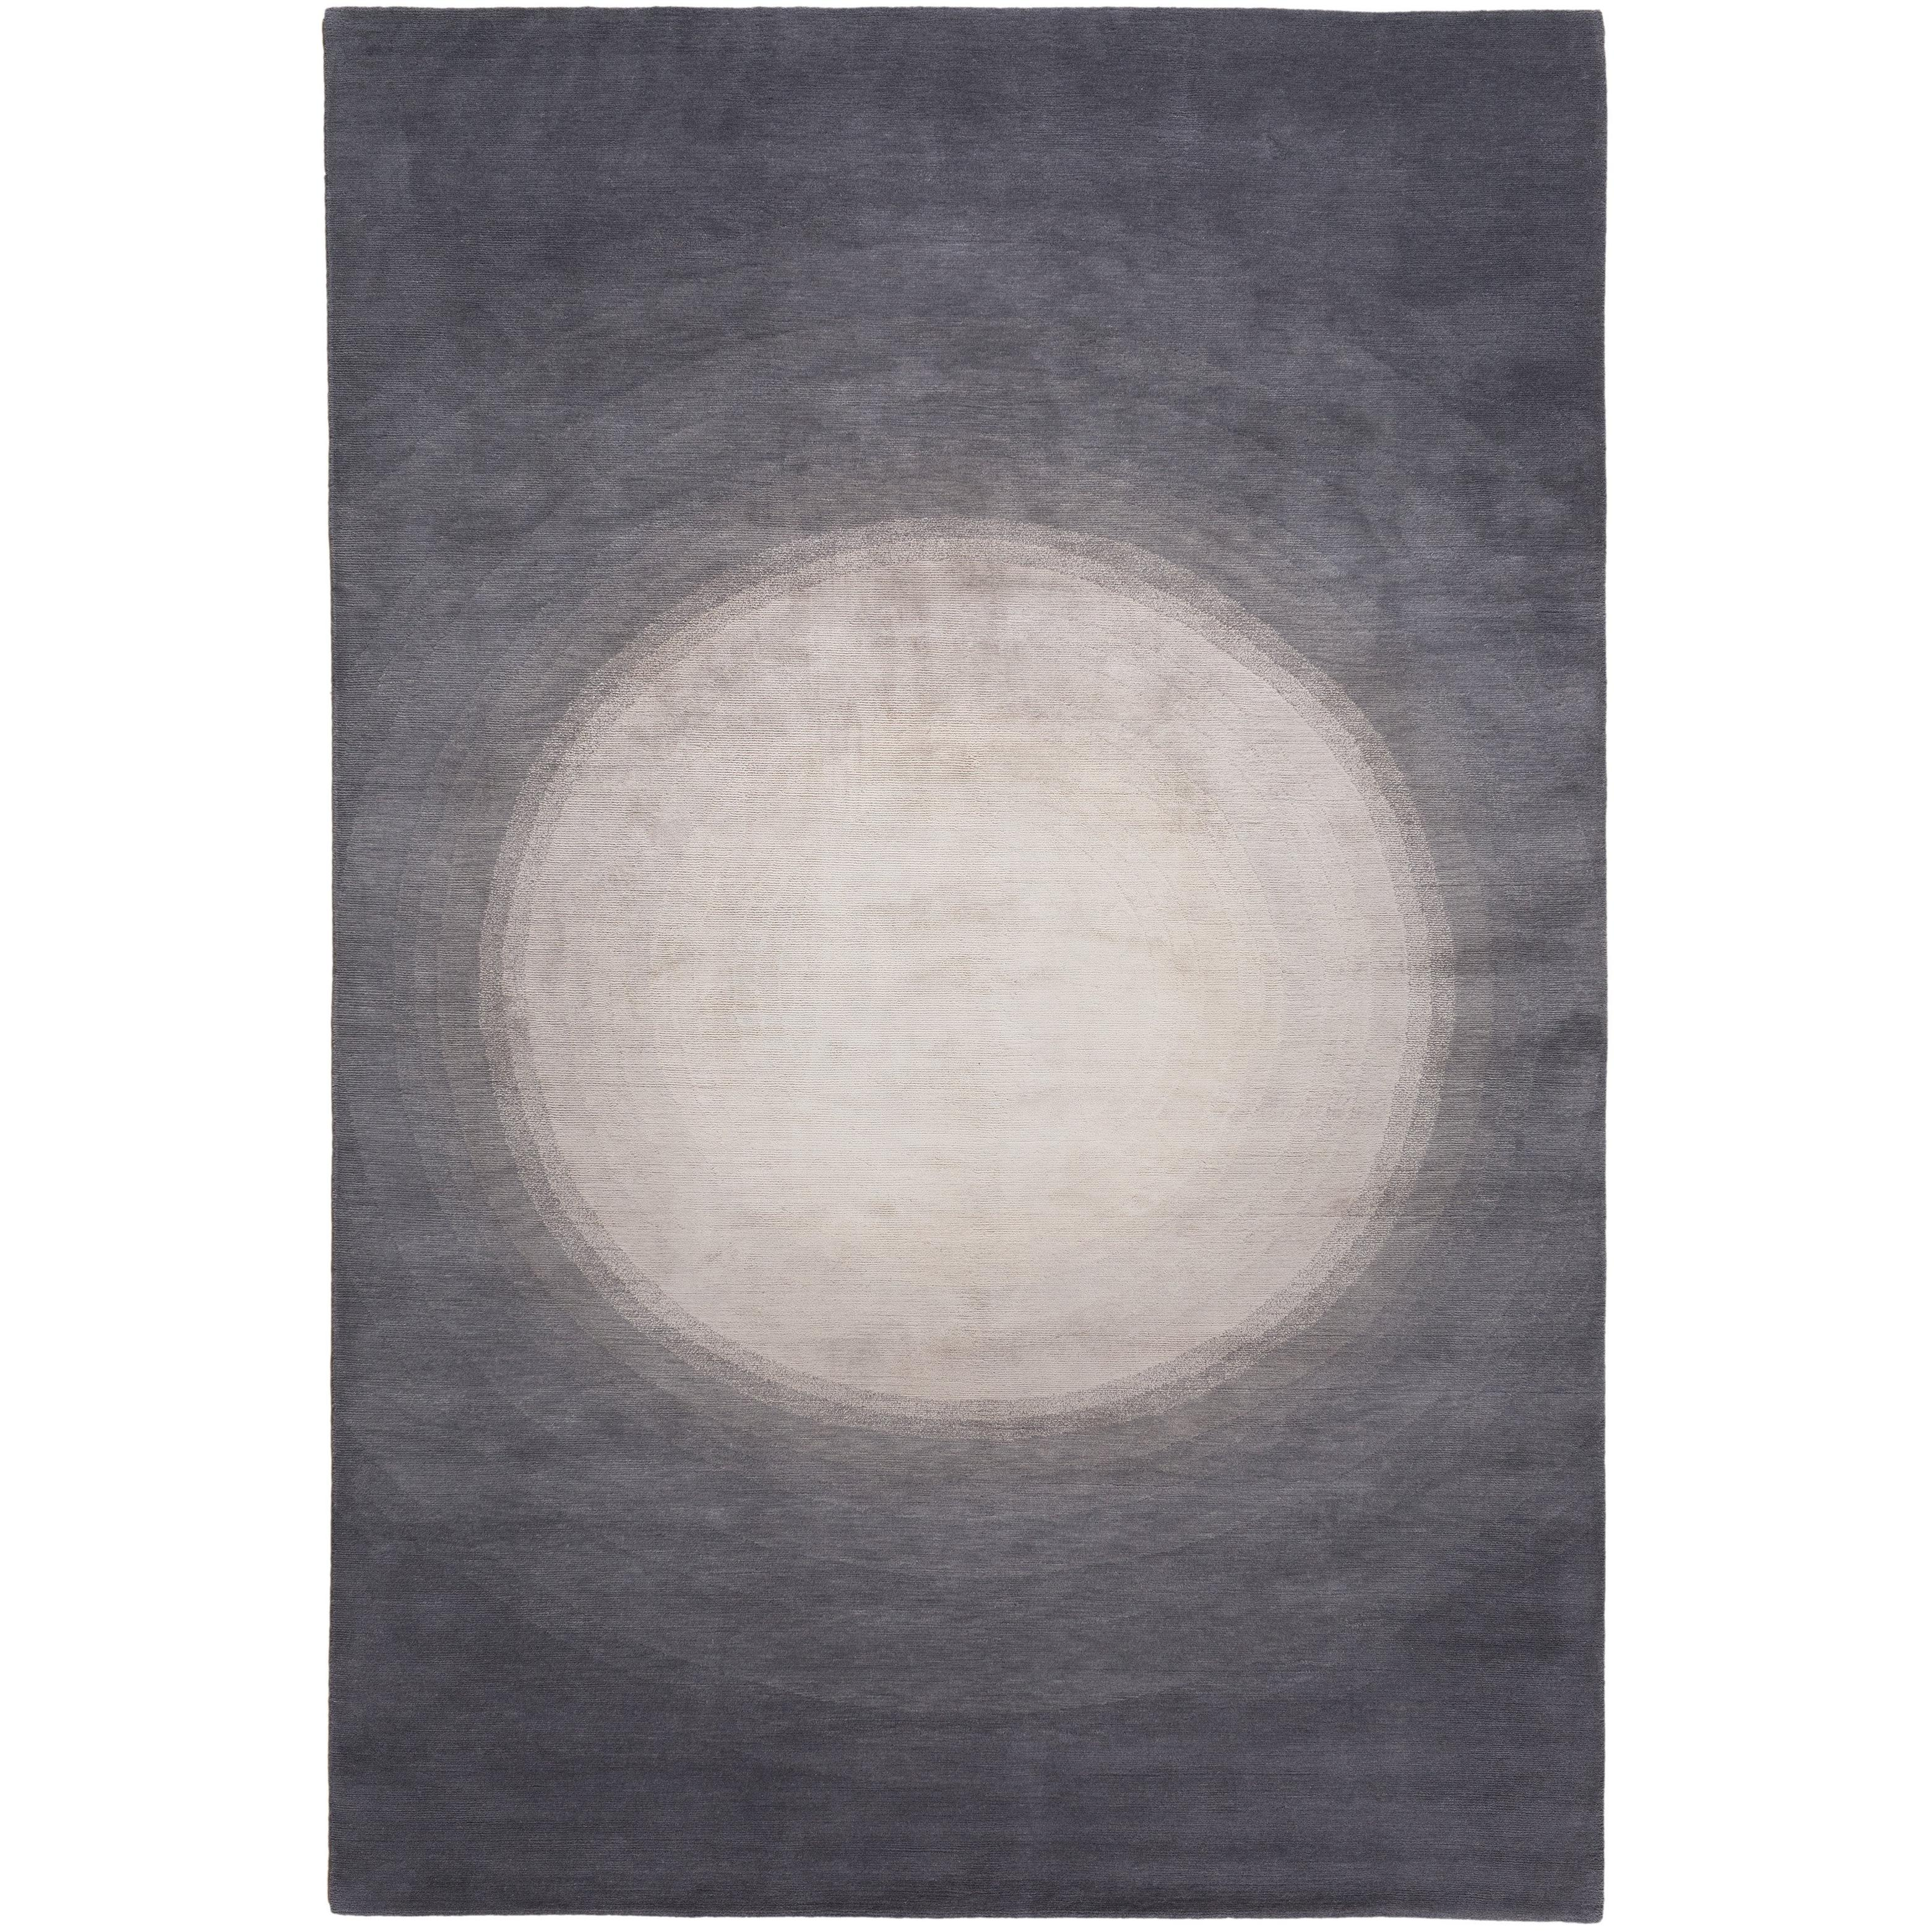 Spotlight Silver Hand-Knotted 10x8 Rug in Wool and Silk by David Rockwell